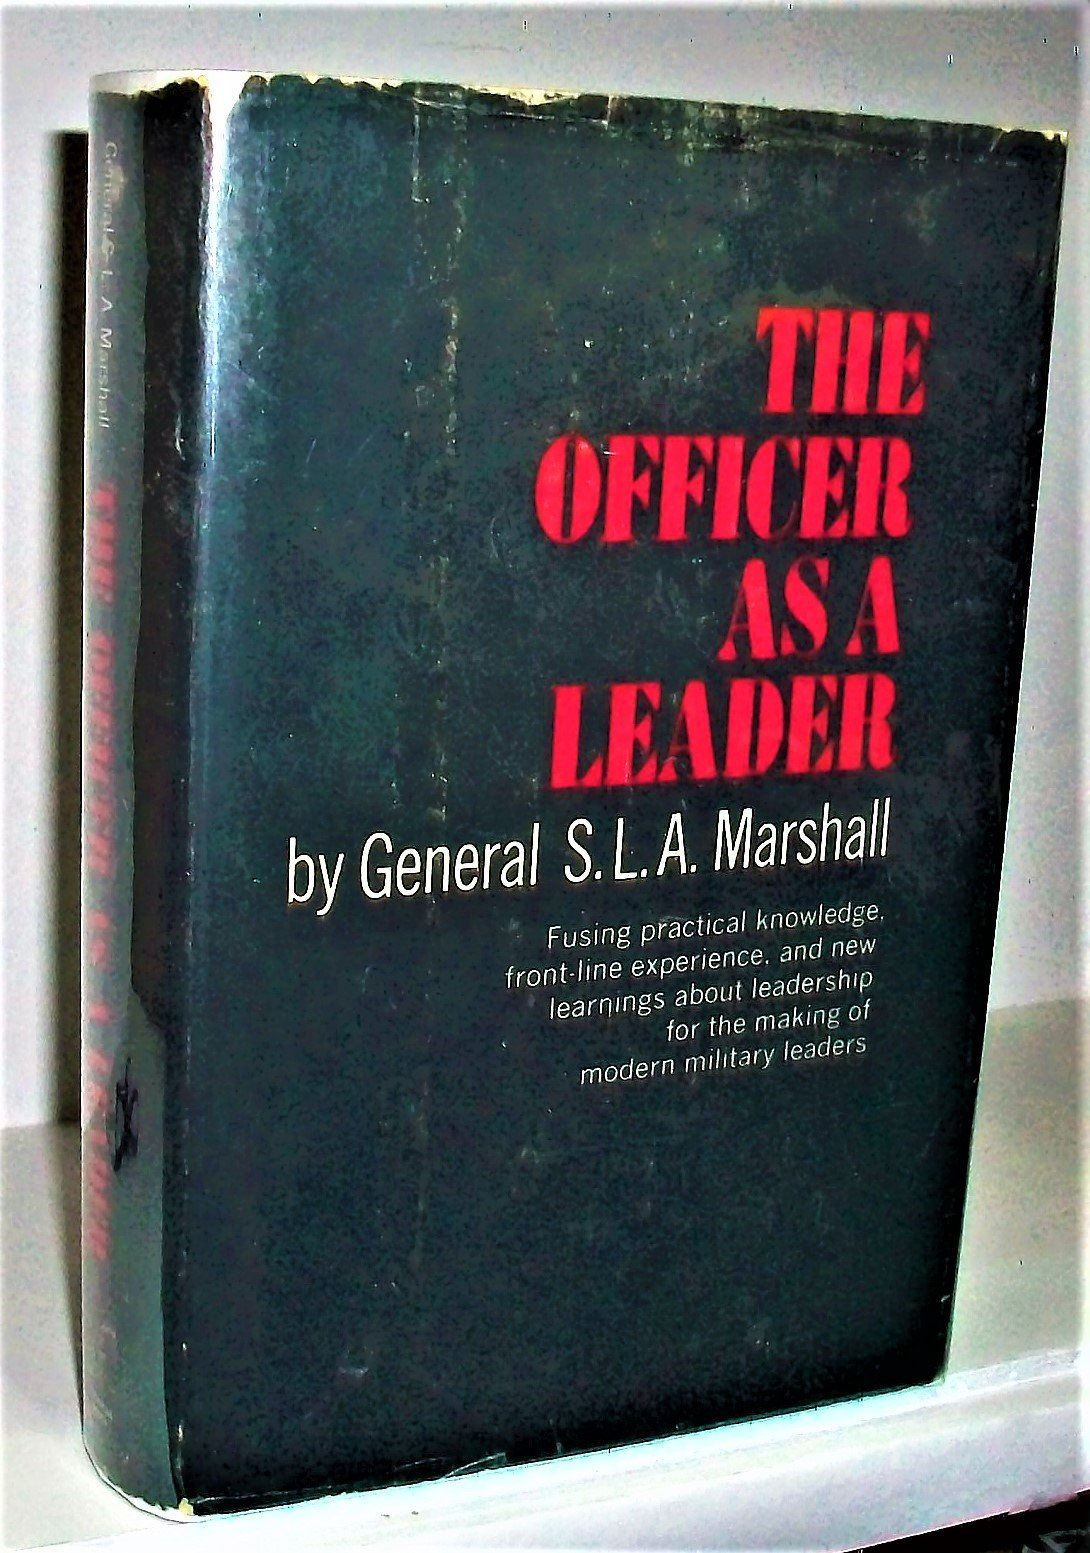 The Officer As A Leader, Marshall, General S.L.A.